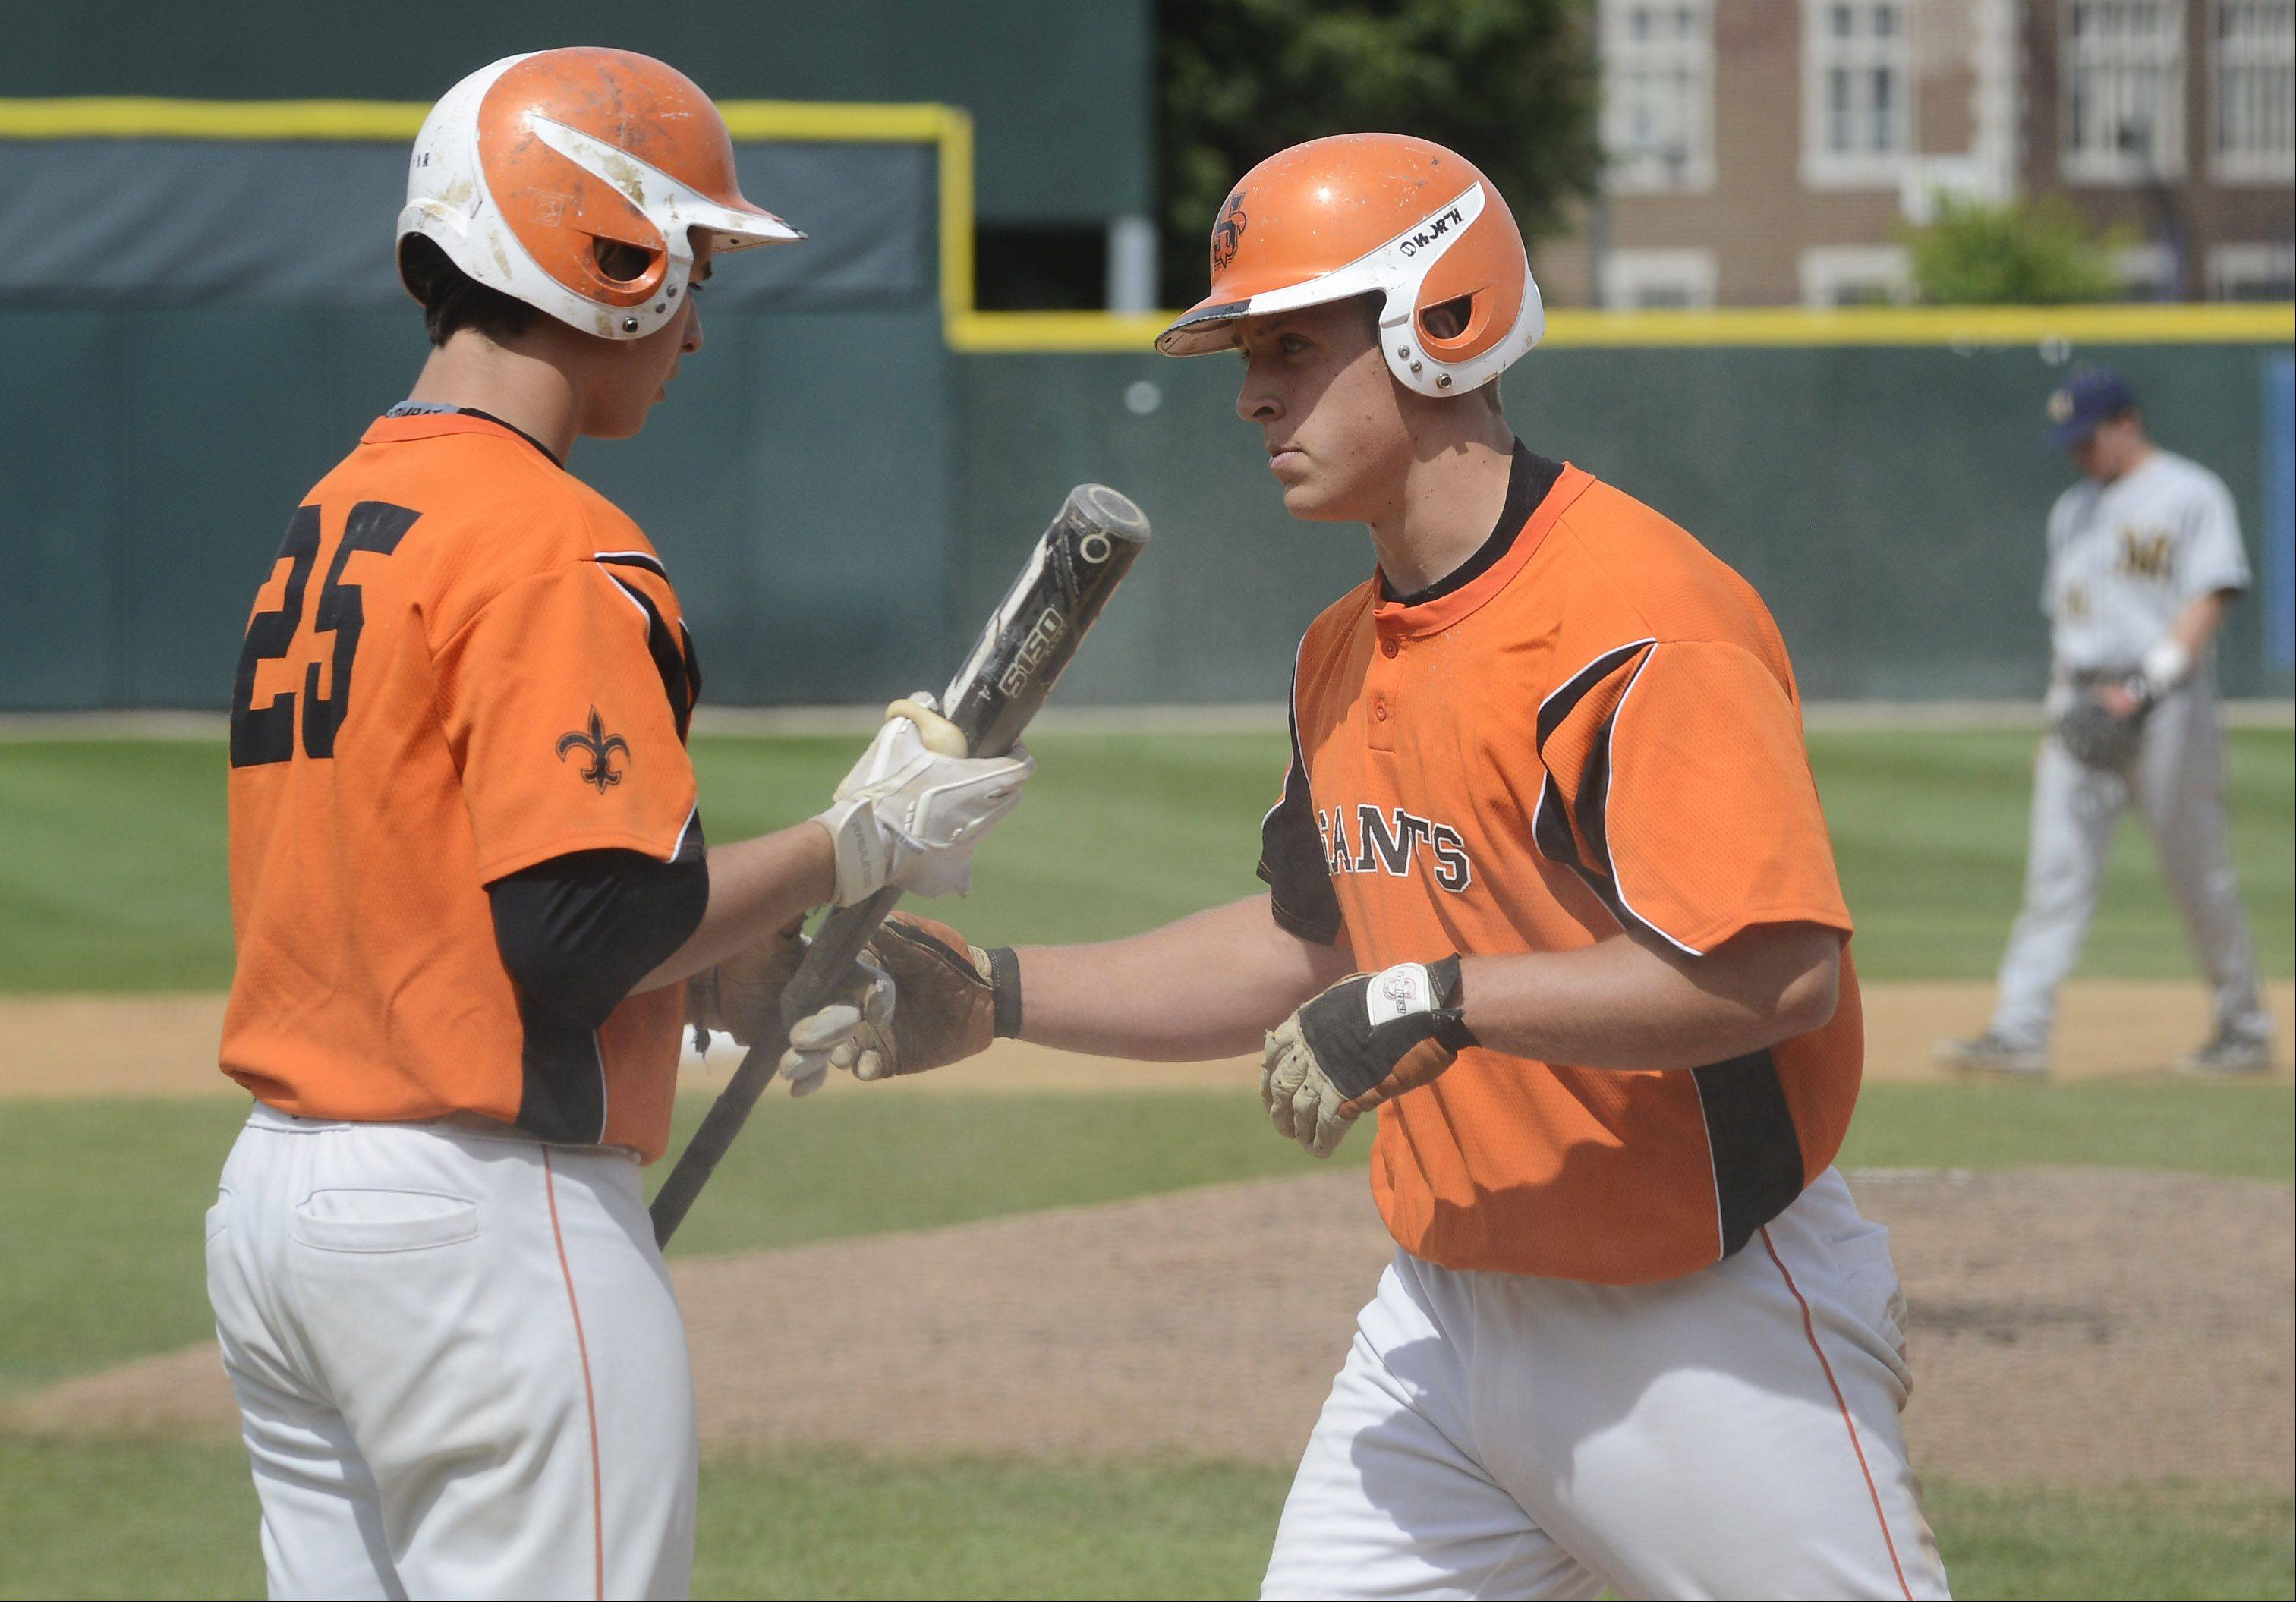 St. Charles East's Joe Hoscheit, right, gets a fist bump from teammate Brian Sobieski after scoring against Neuqua Valley during the Class 4A state baseball third-place game at Silver Cross Field in Joliet Saturday.